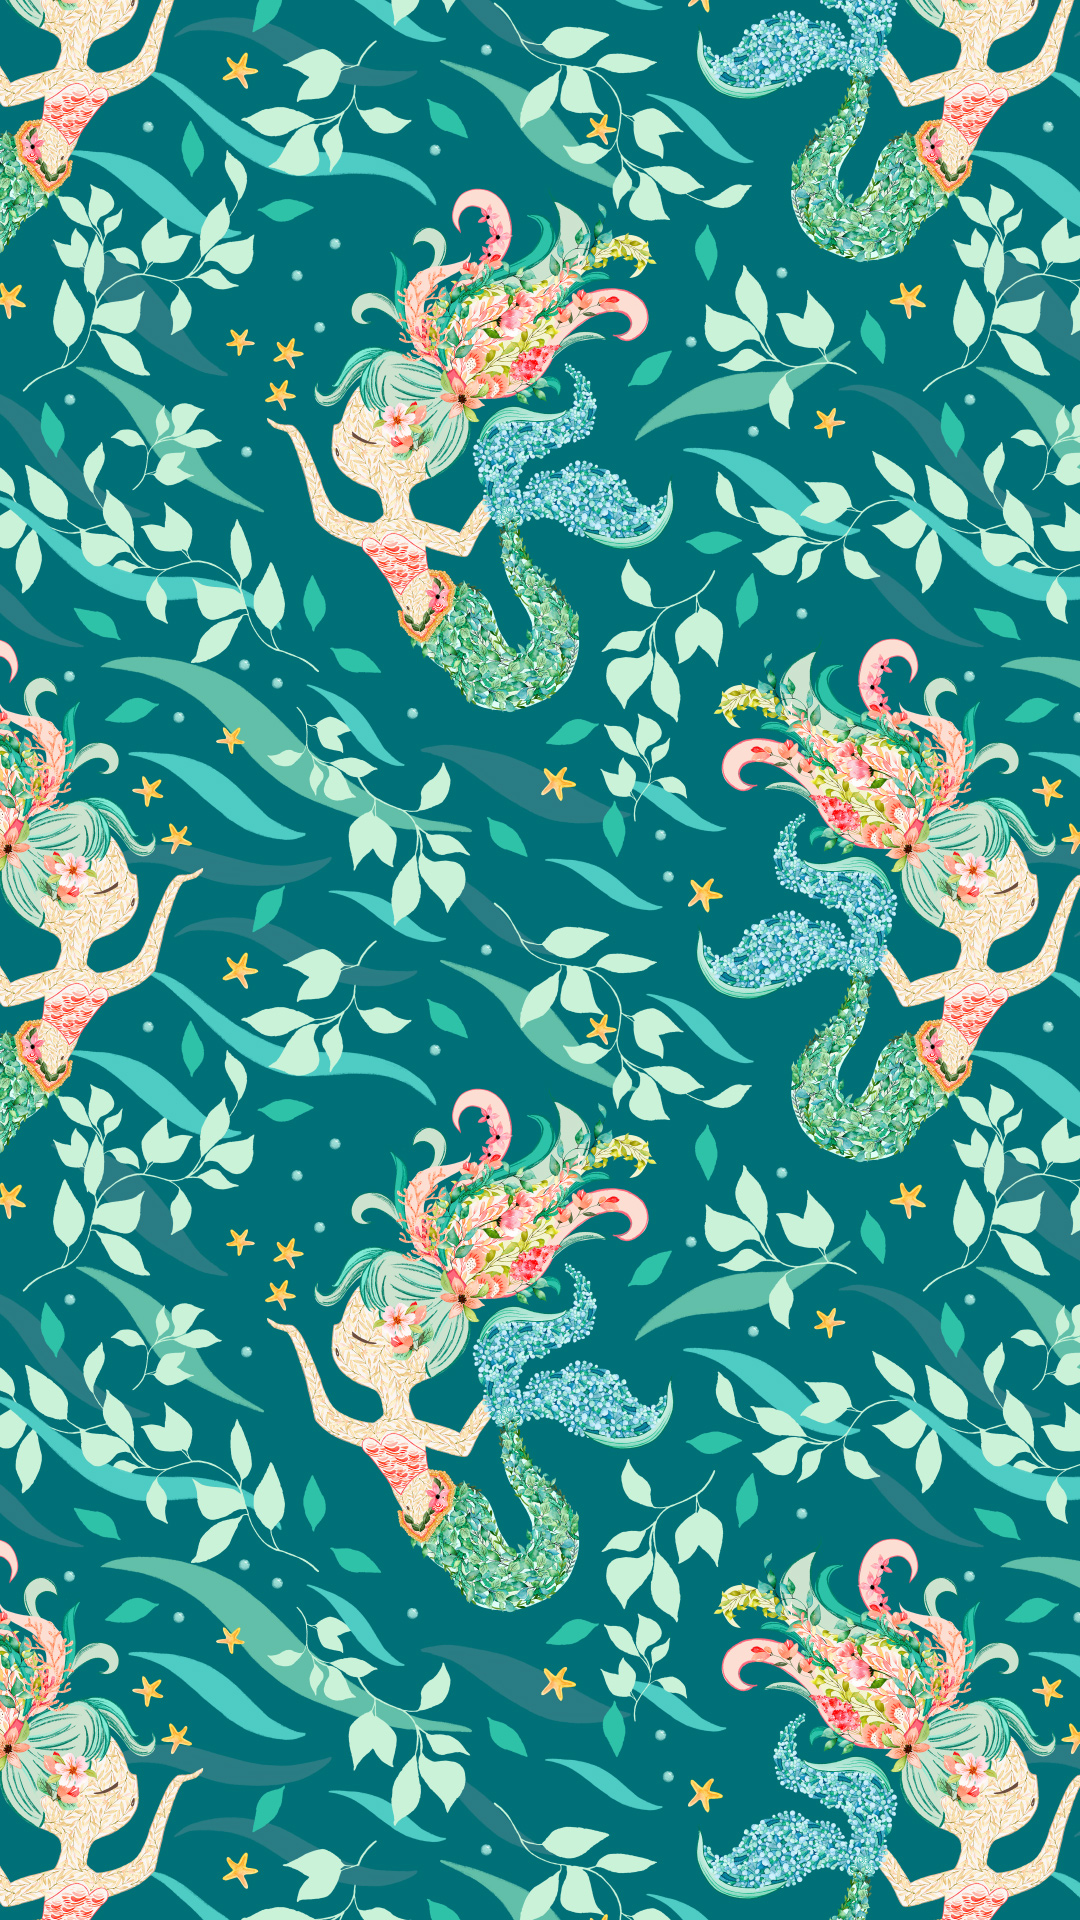 saltwater shores - A collection of whimsical tropical patterns